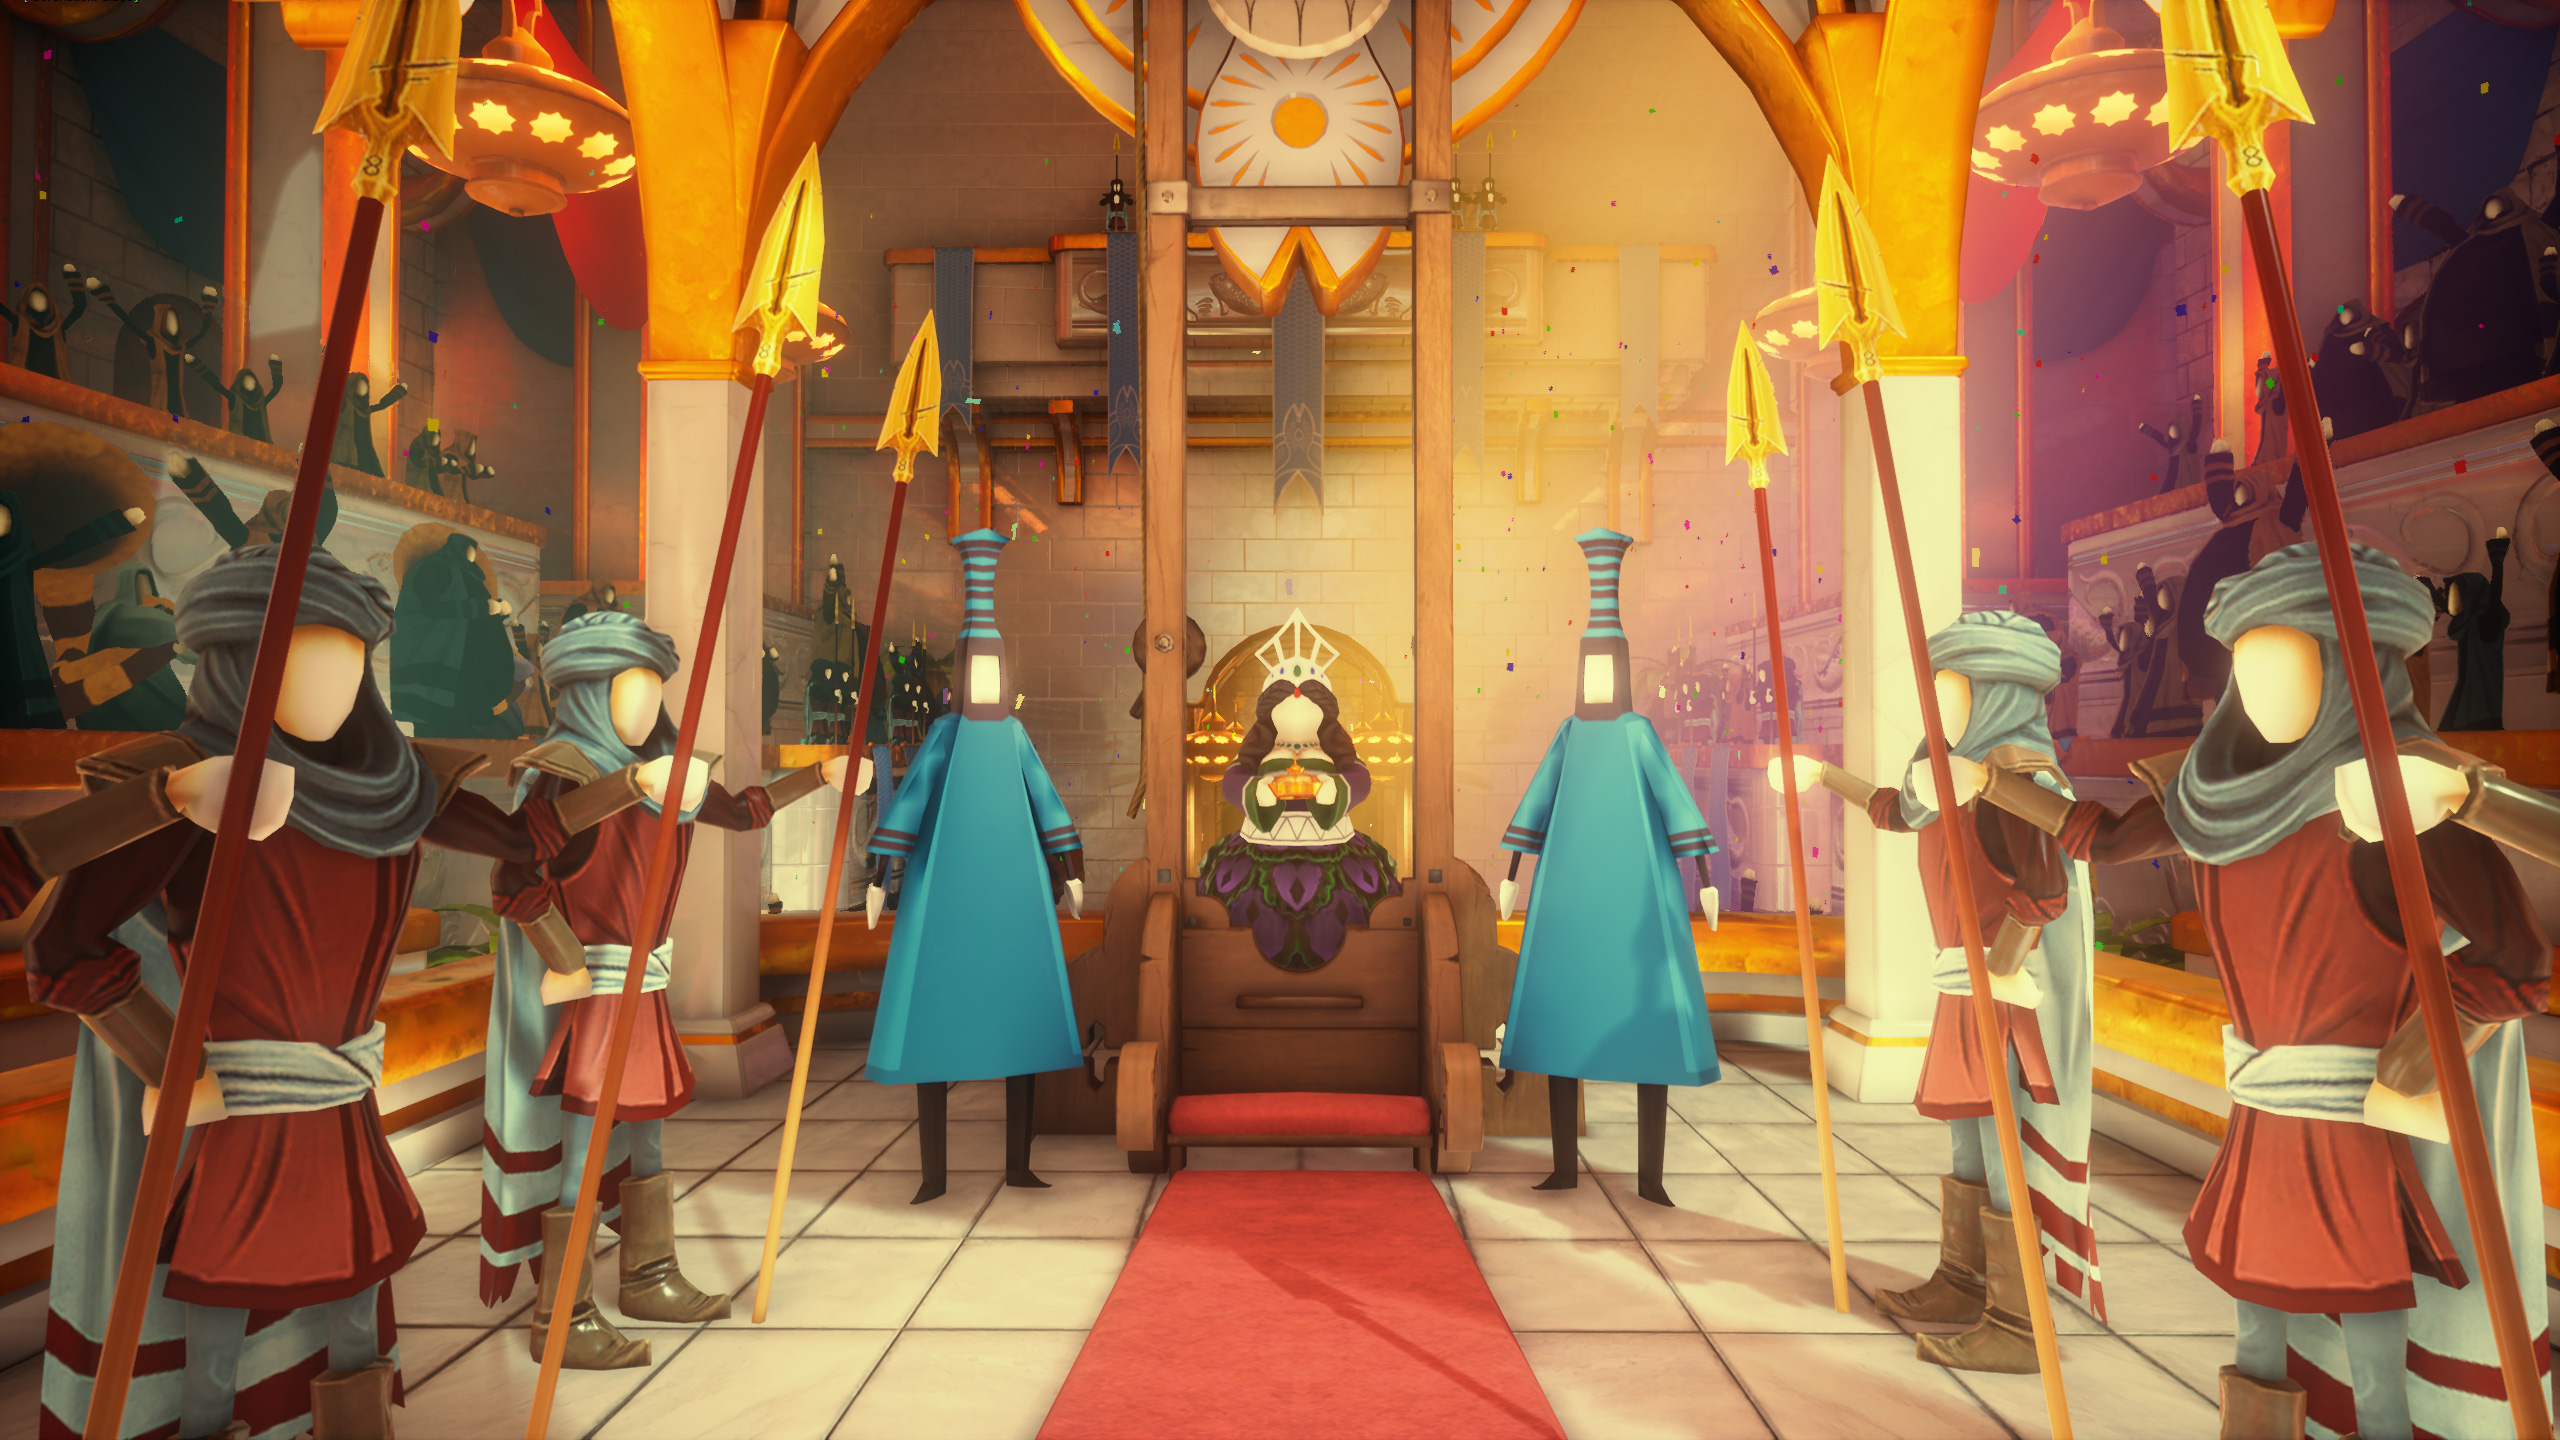 Best PC games: What Remains of Edith Finch